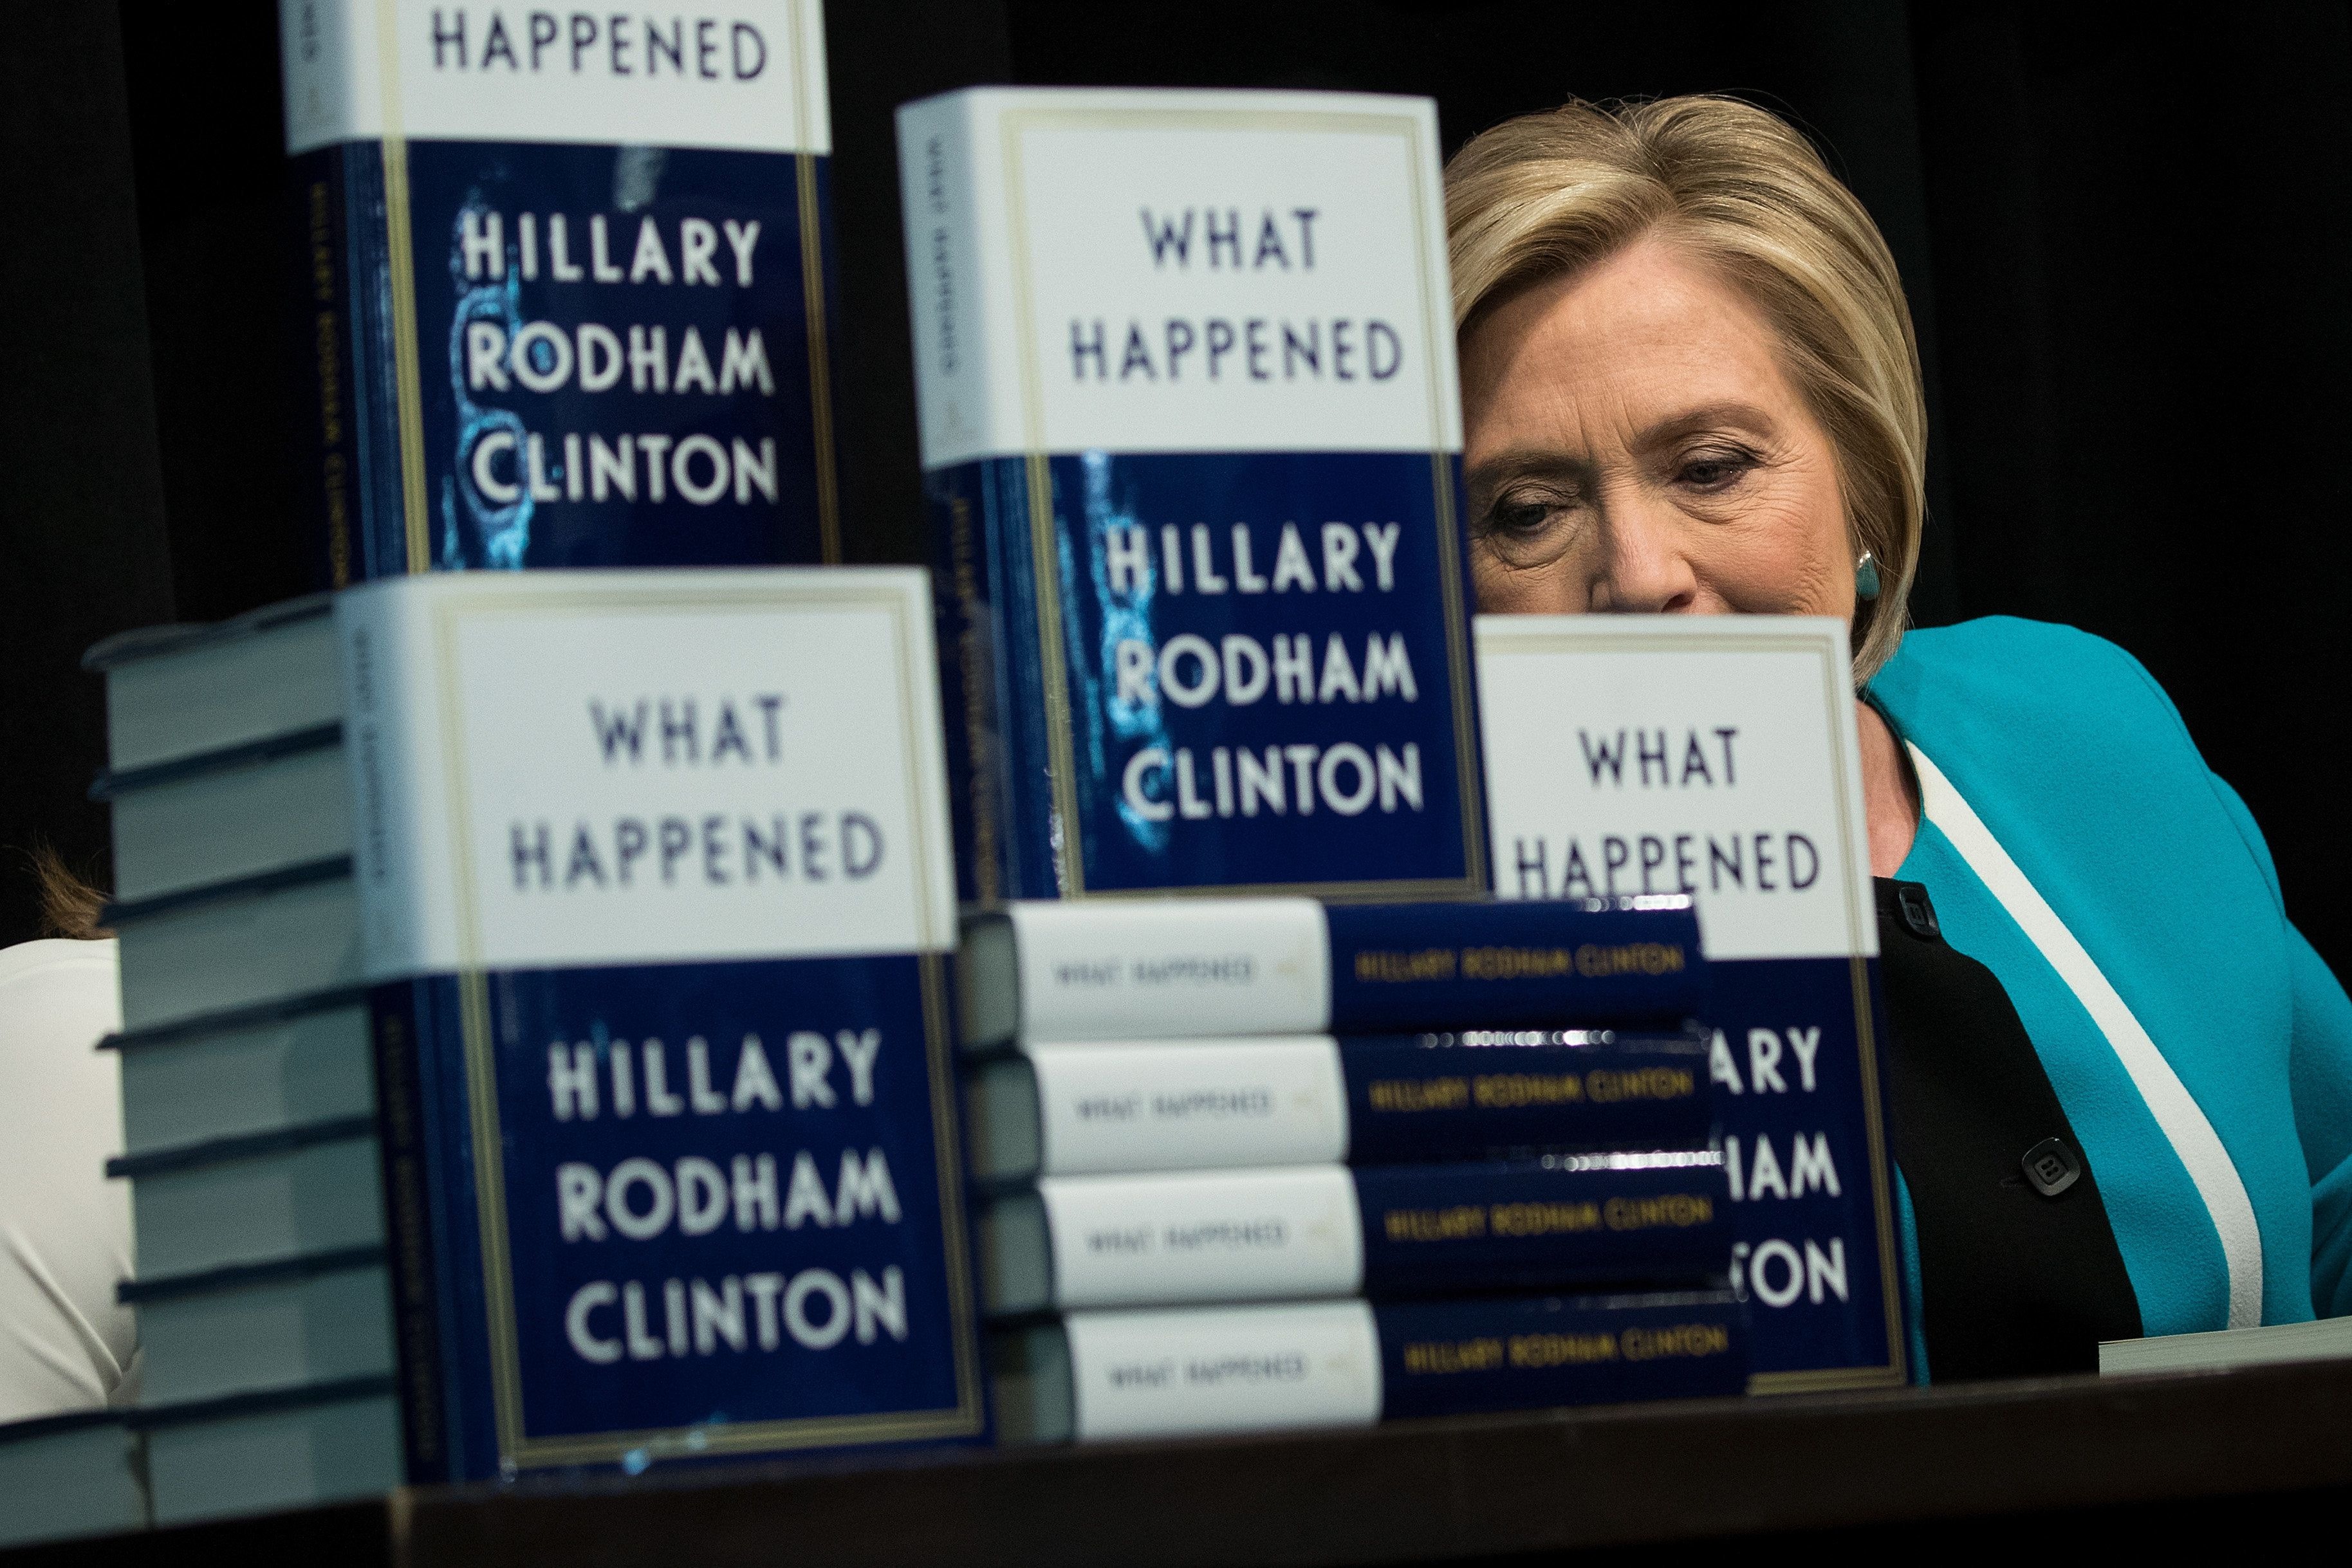 NEW YORK, NY - SEPTEMBER 12: Former U.S. Secretary of State Hillary Clinton signs copies of her new book 'What Happened' during a book signing event at Barnes and Noble bookstore September 12, 2017 in New York City. Clinton's book, which focuses on her 2016 election loss to President Donald Trump, goes on sale today. (Photo by Drew Angerer/Getty Images)